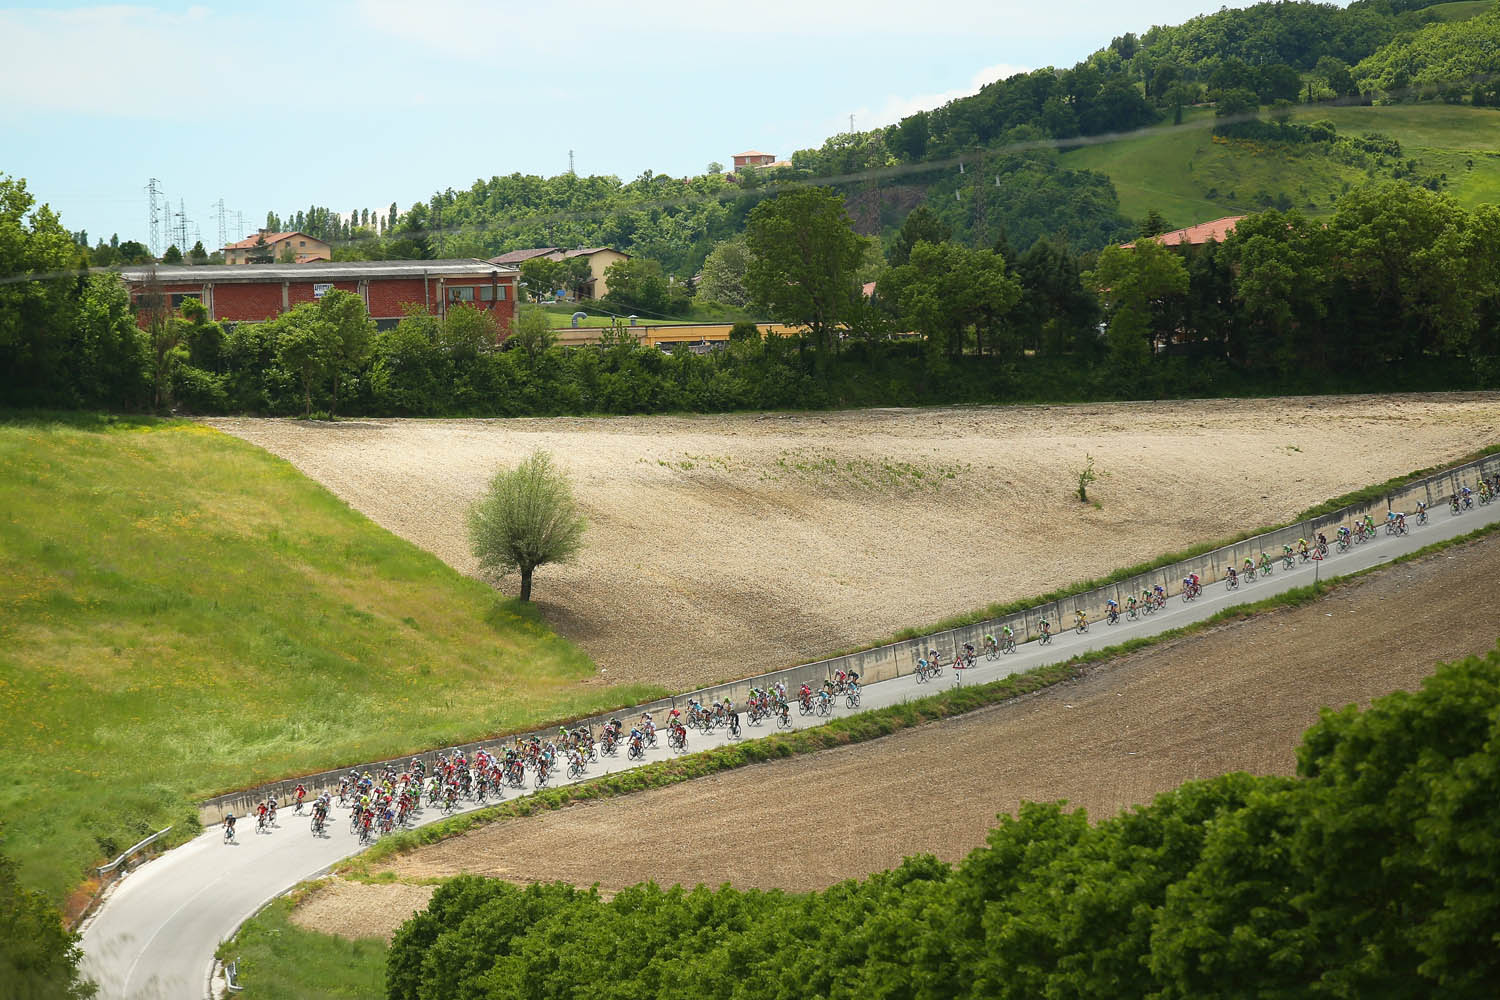 May 17, 2014. The peloton in action during the eighth stage of the 2014 Giro d'Italia, a 179km medium mountain stage between Foligno and Montecopiolo in Folignano, Italy.